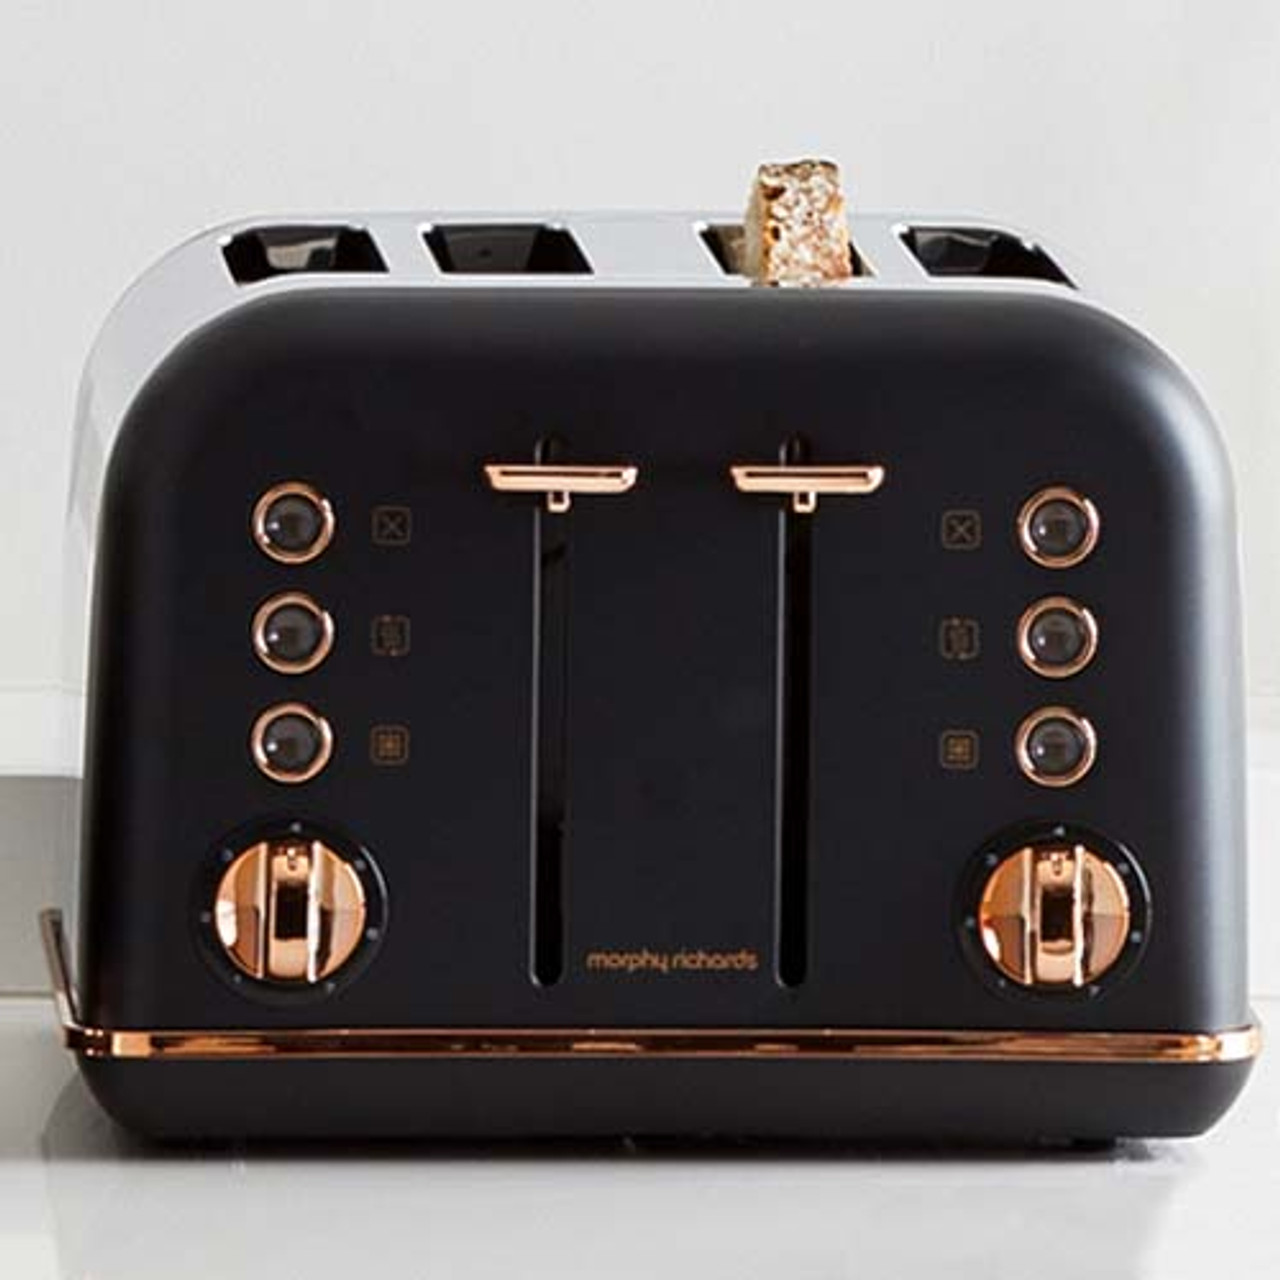 Morphy Richards 202107 Accents Rose 1880W 4 Slice Toaster - Gold Black